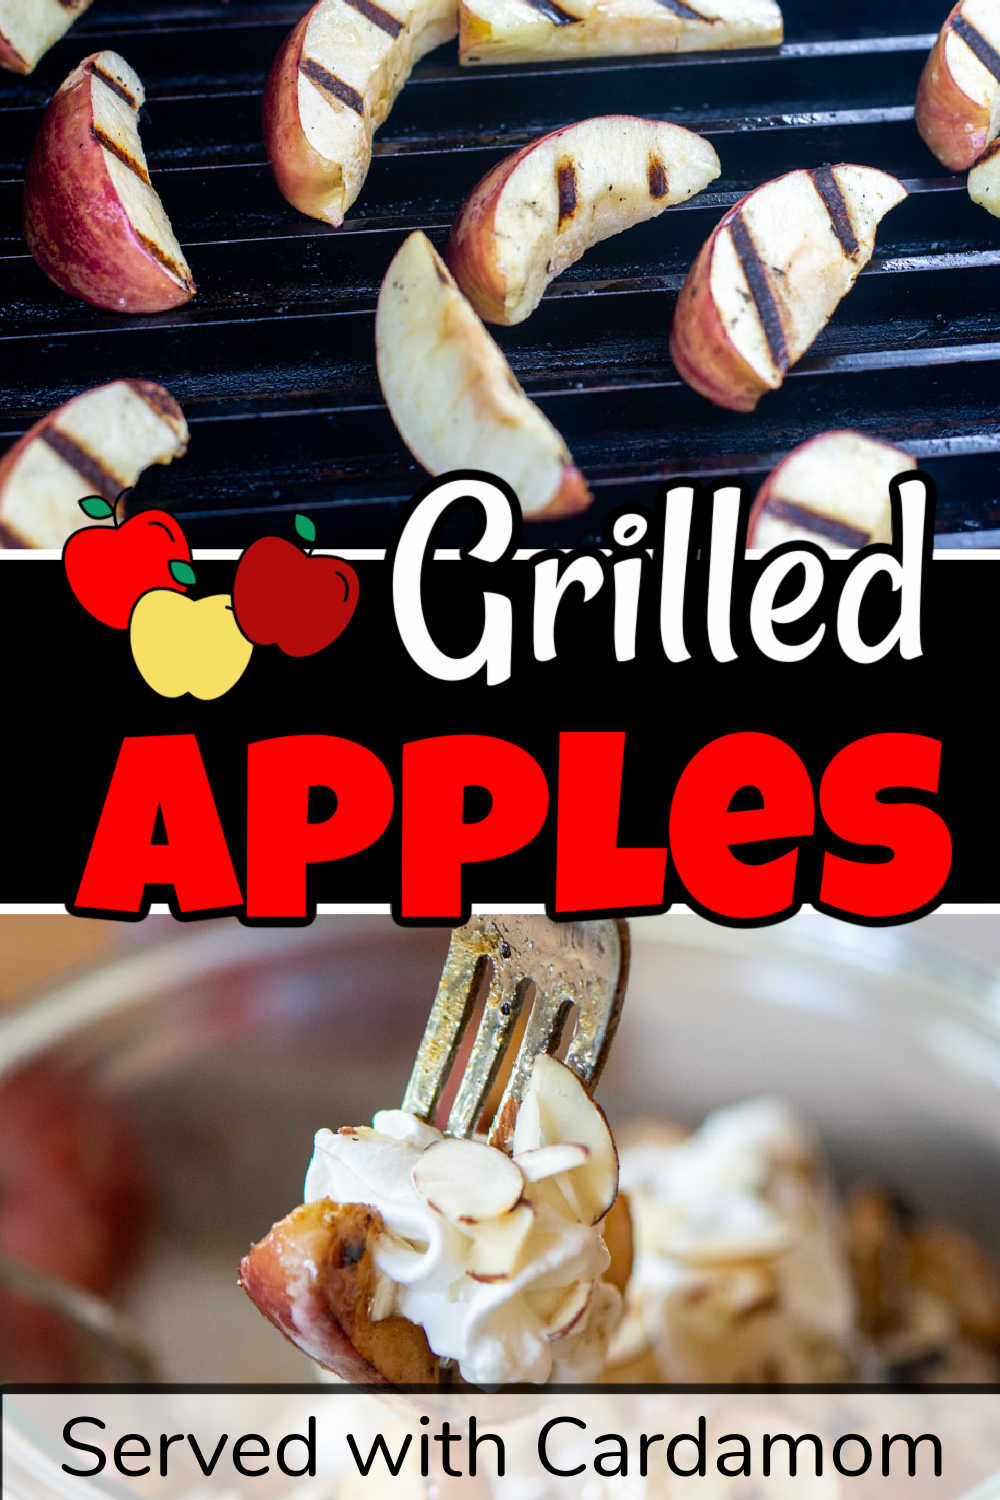 Grilled Apples with Cardamom